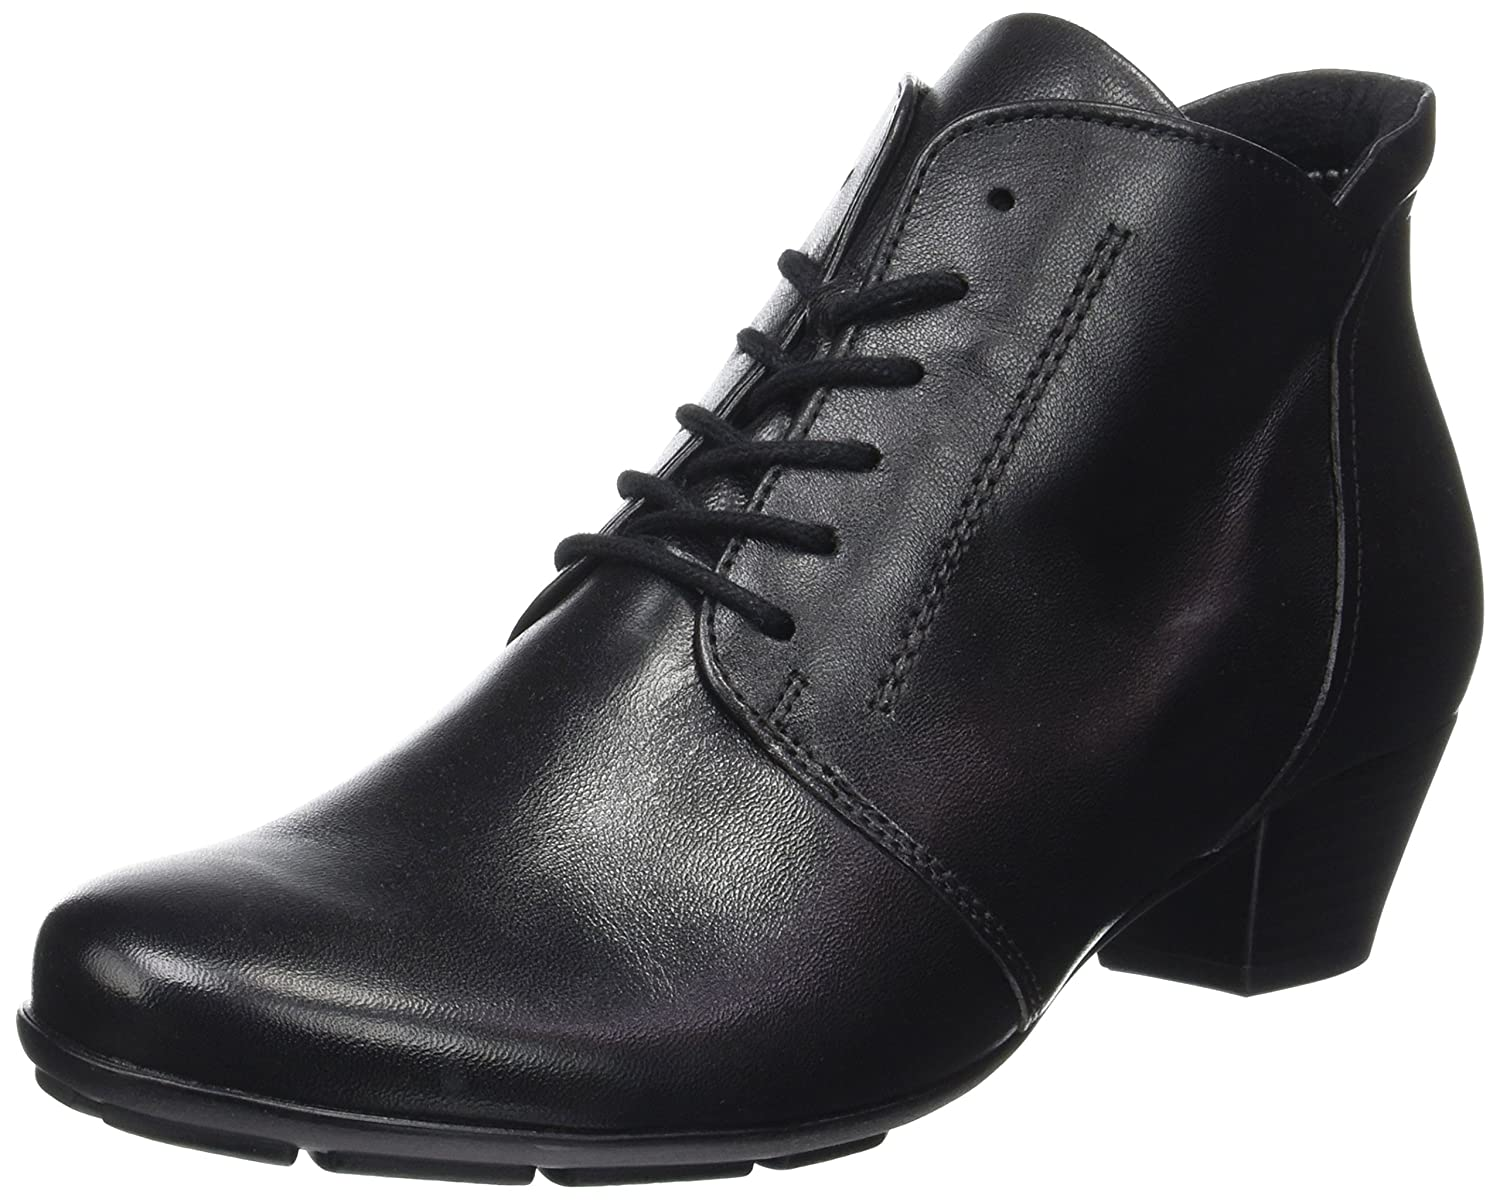 Gabor Shoes Gabor Basic, (27 18584 Bottes B0751HQRN9 Femme Noir (27 Schwarz) 474c4b0 - fast-weightloss-diet.space